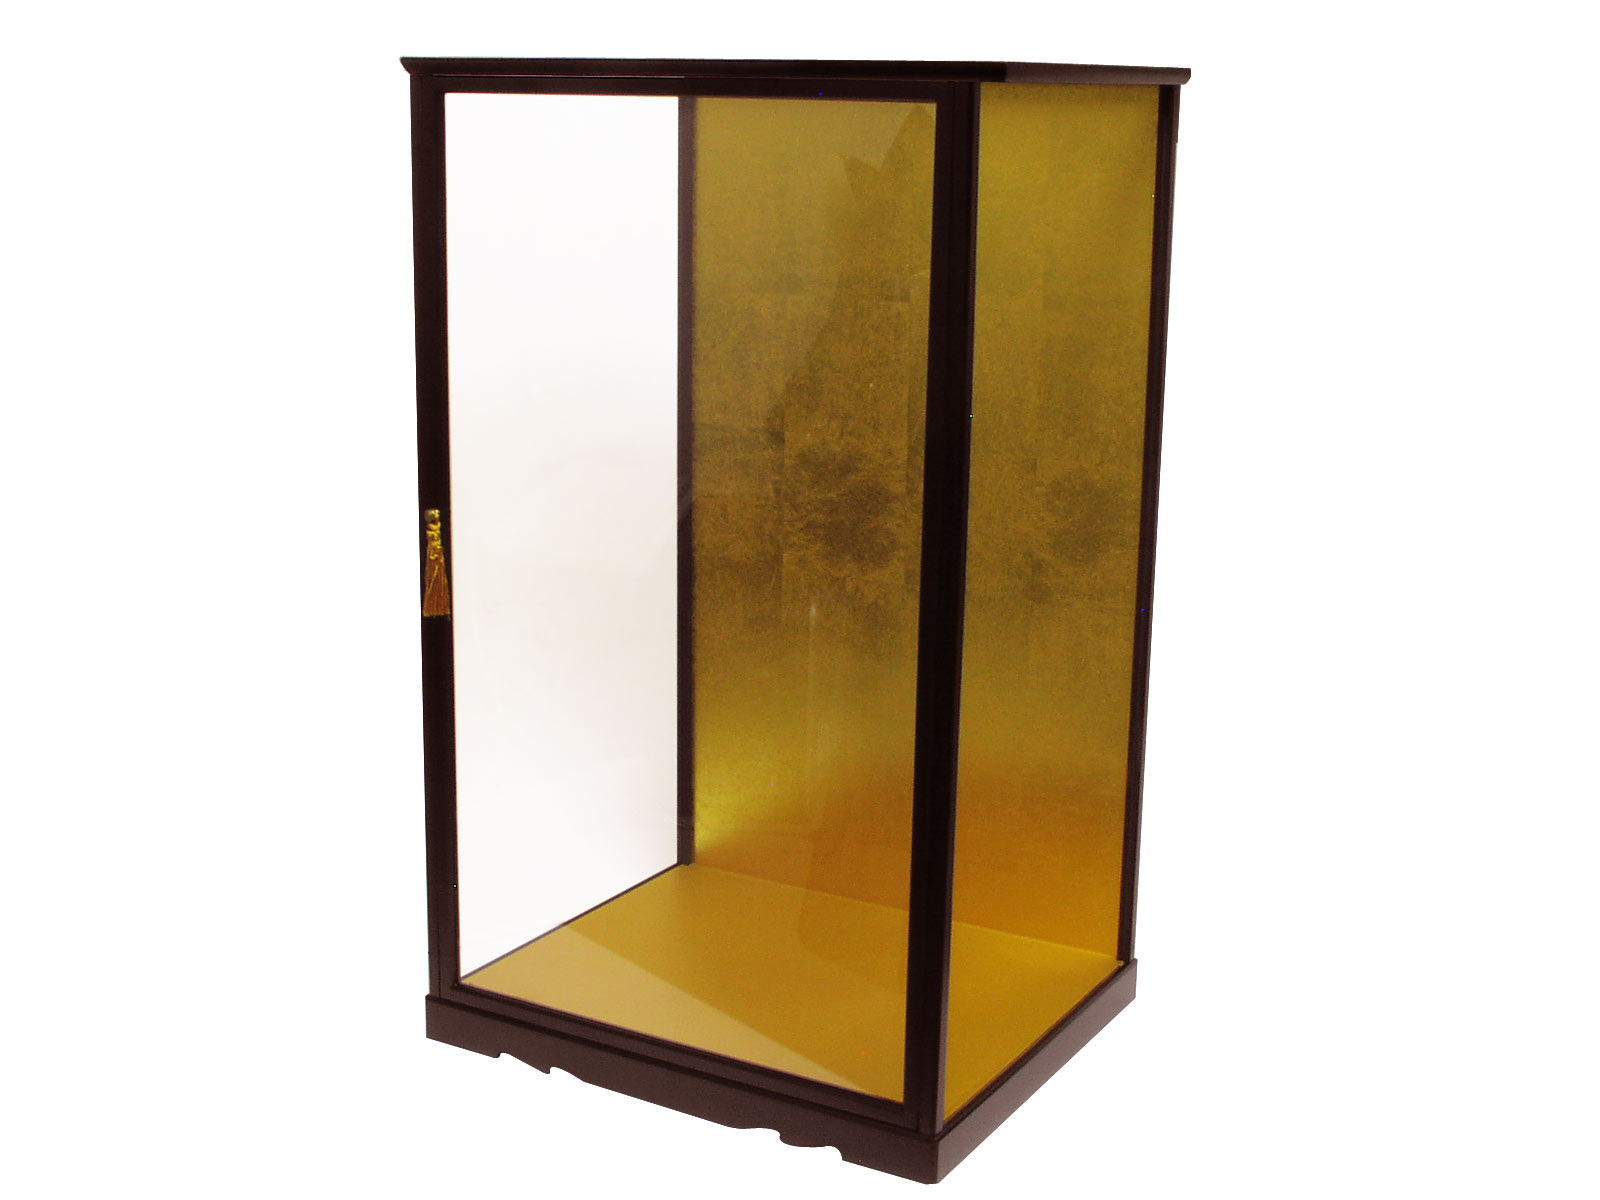 Anese Large Wooden Gl Display Cases W 15 3 8 X D 13 H